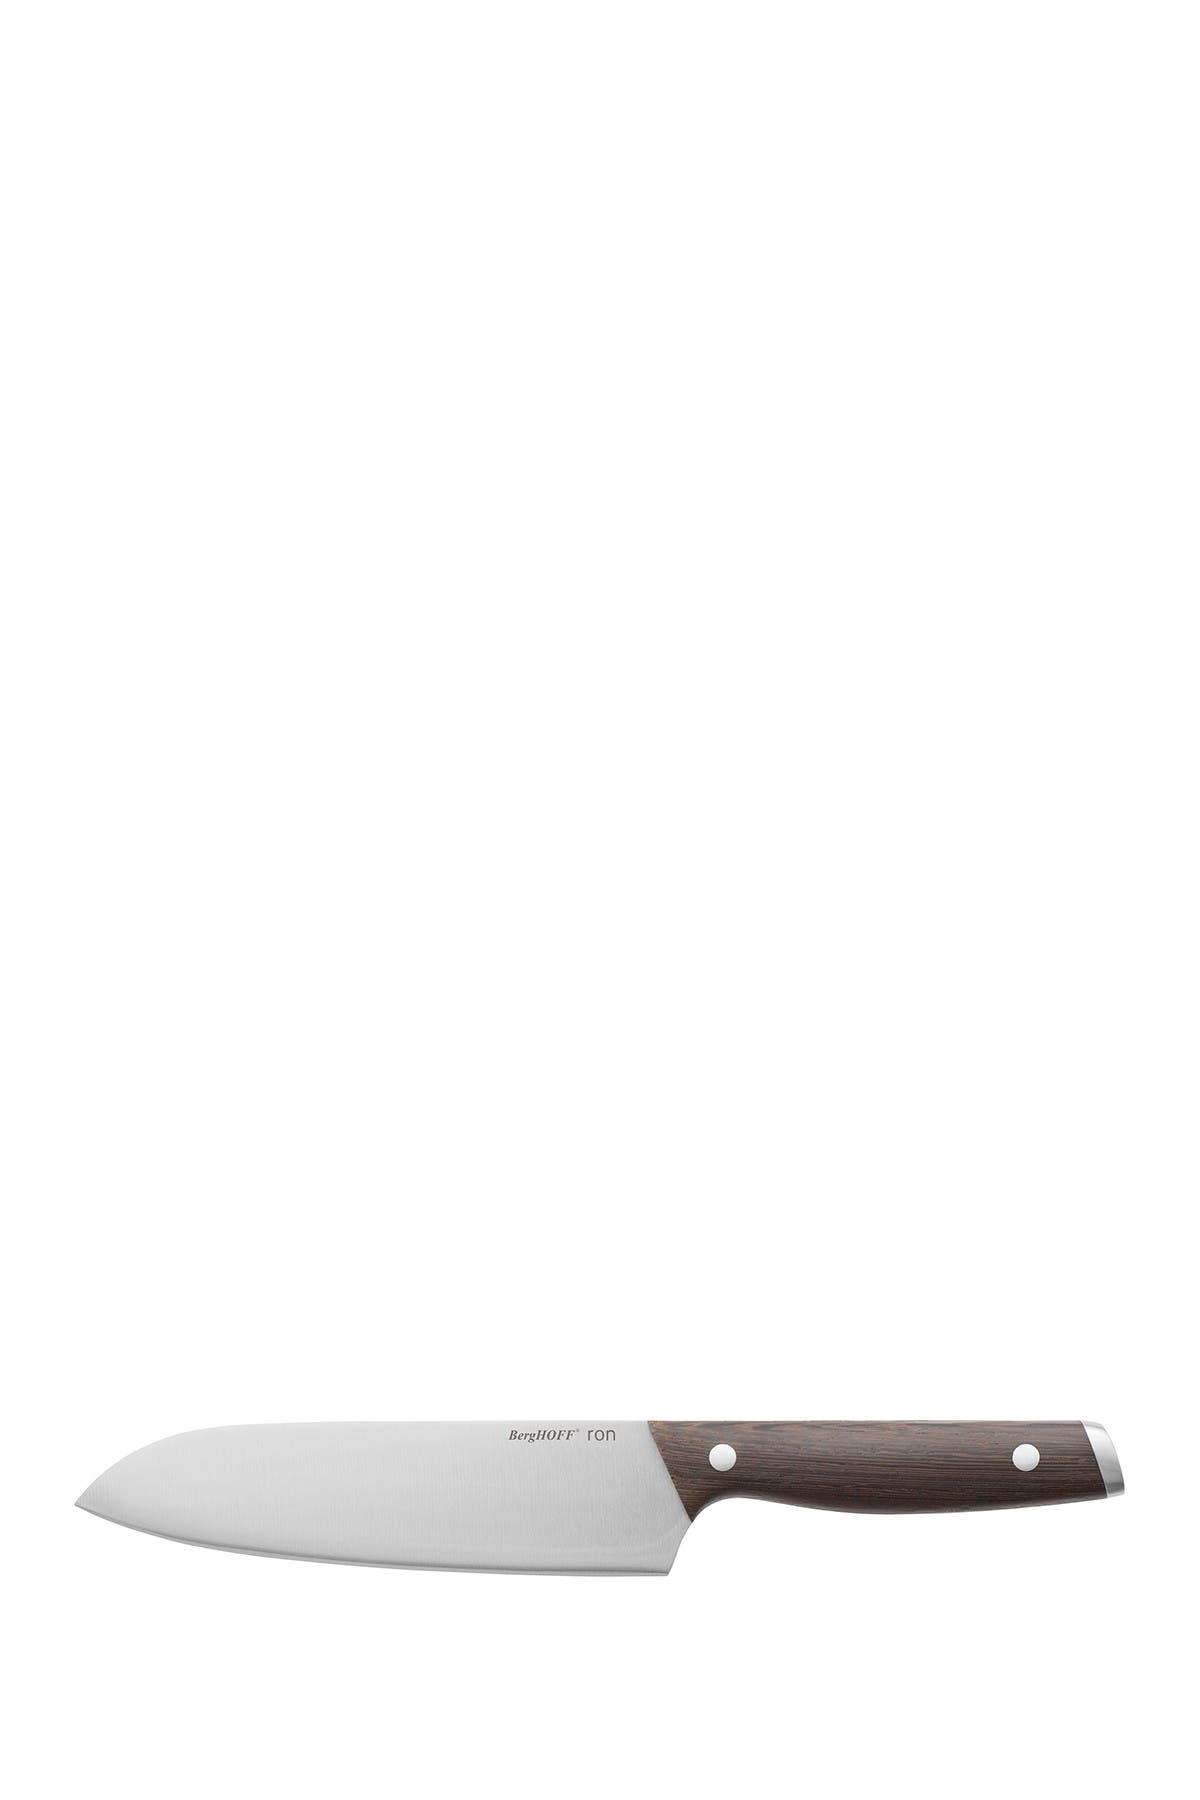 "Image of BergHOFF Brown Ron Acapu 7"" Santoku Knife"